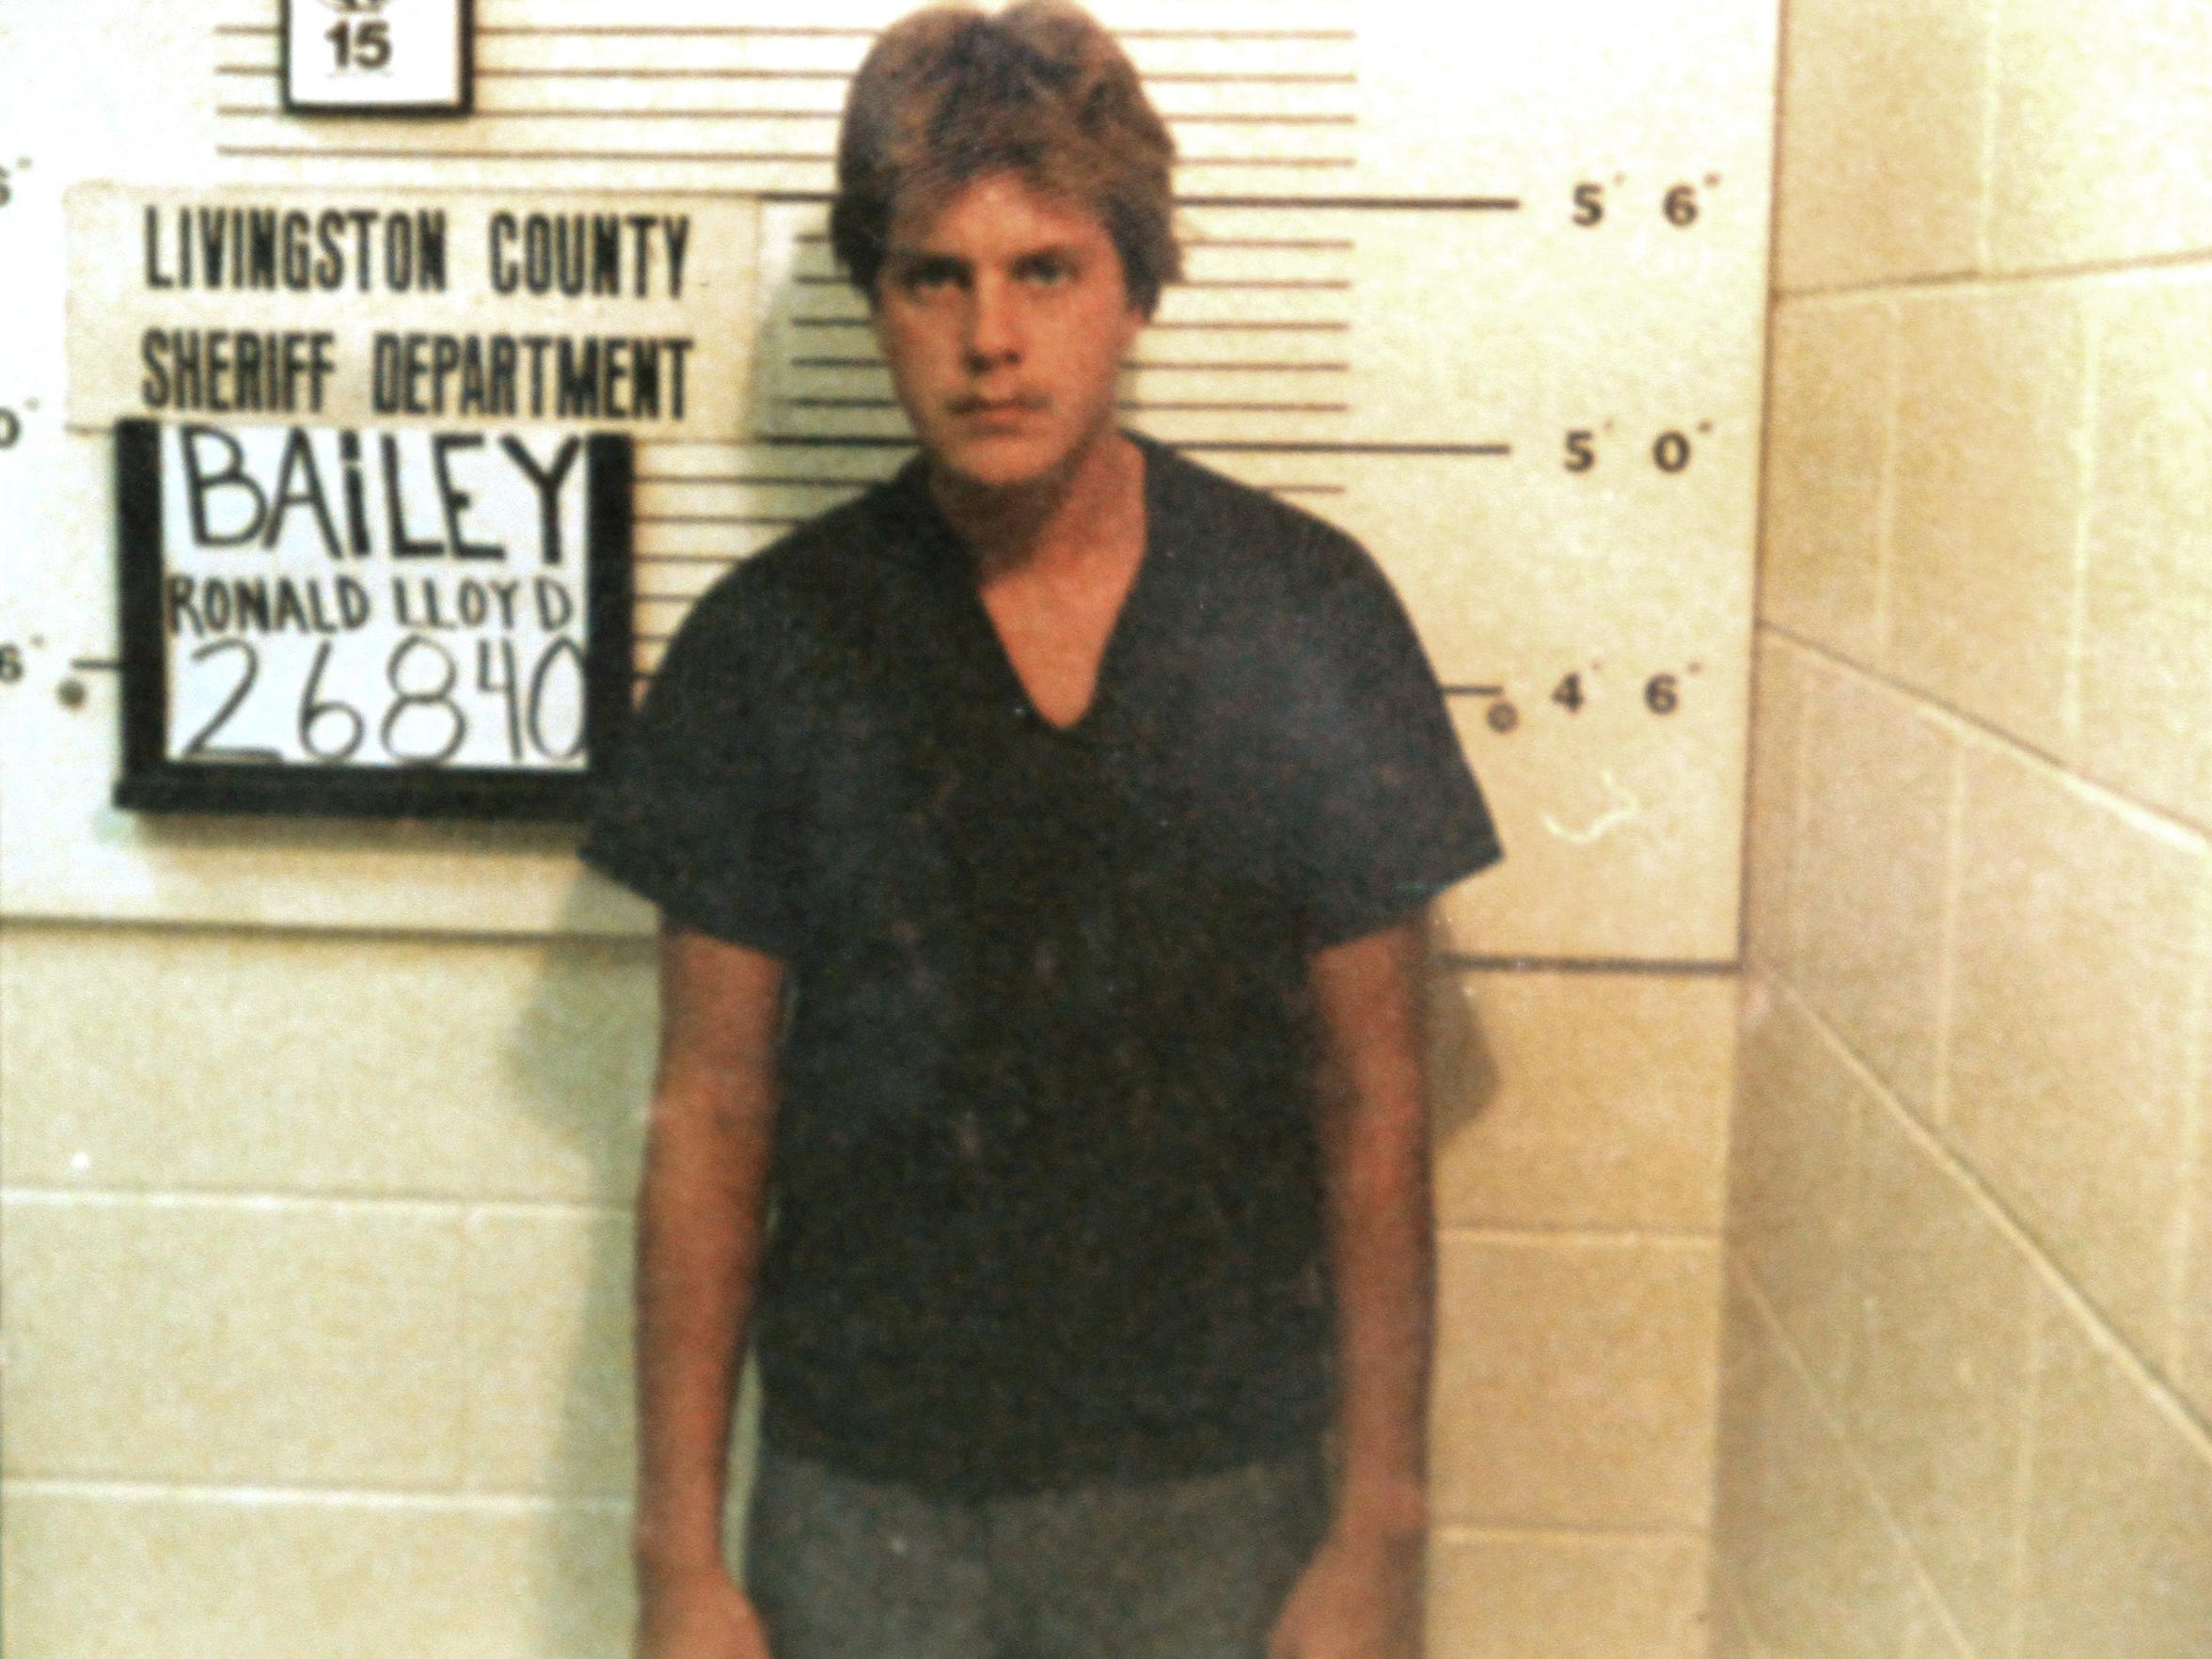 Ronald Lloyd Bailey was booked into the Livingston County Jail in September 1985.